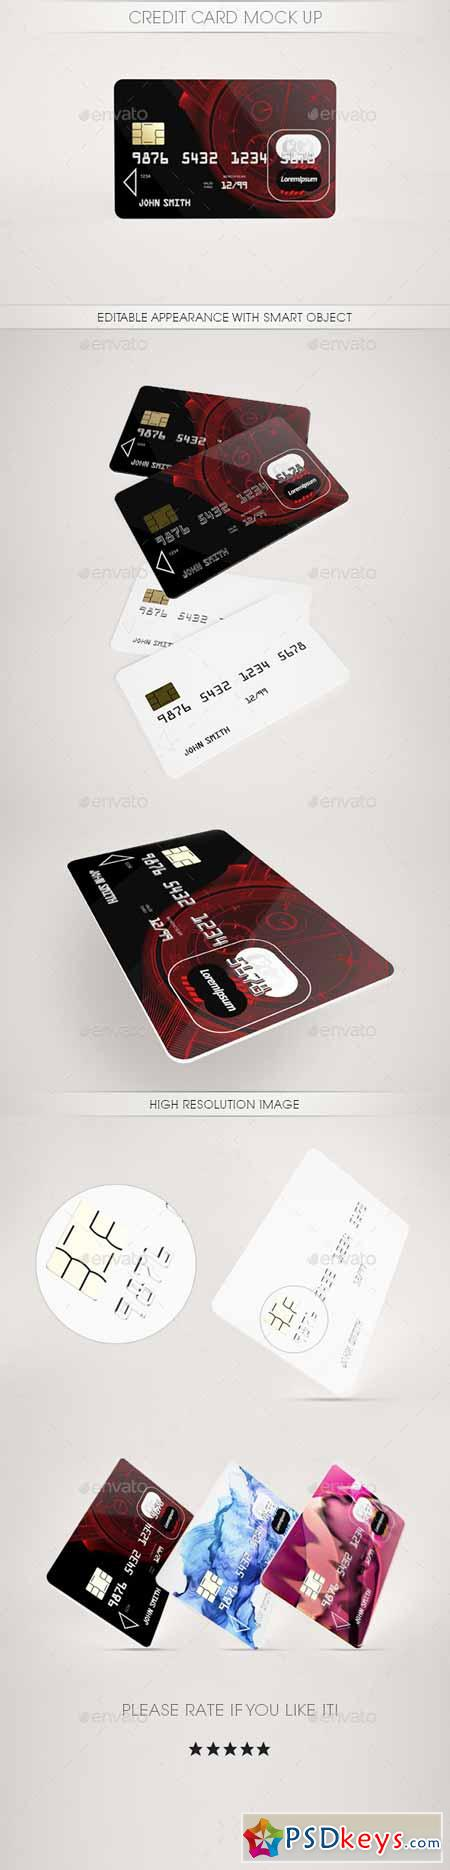 credit card mock up 11718045 free download photoshop vector stock image via torrent zippyshare. Black Bedroom Furniture Sets. Home Design Ideas